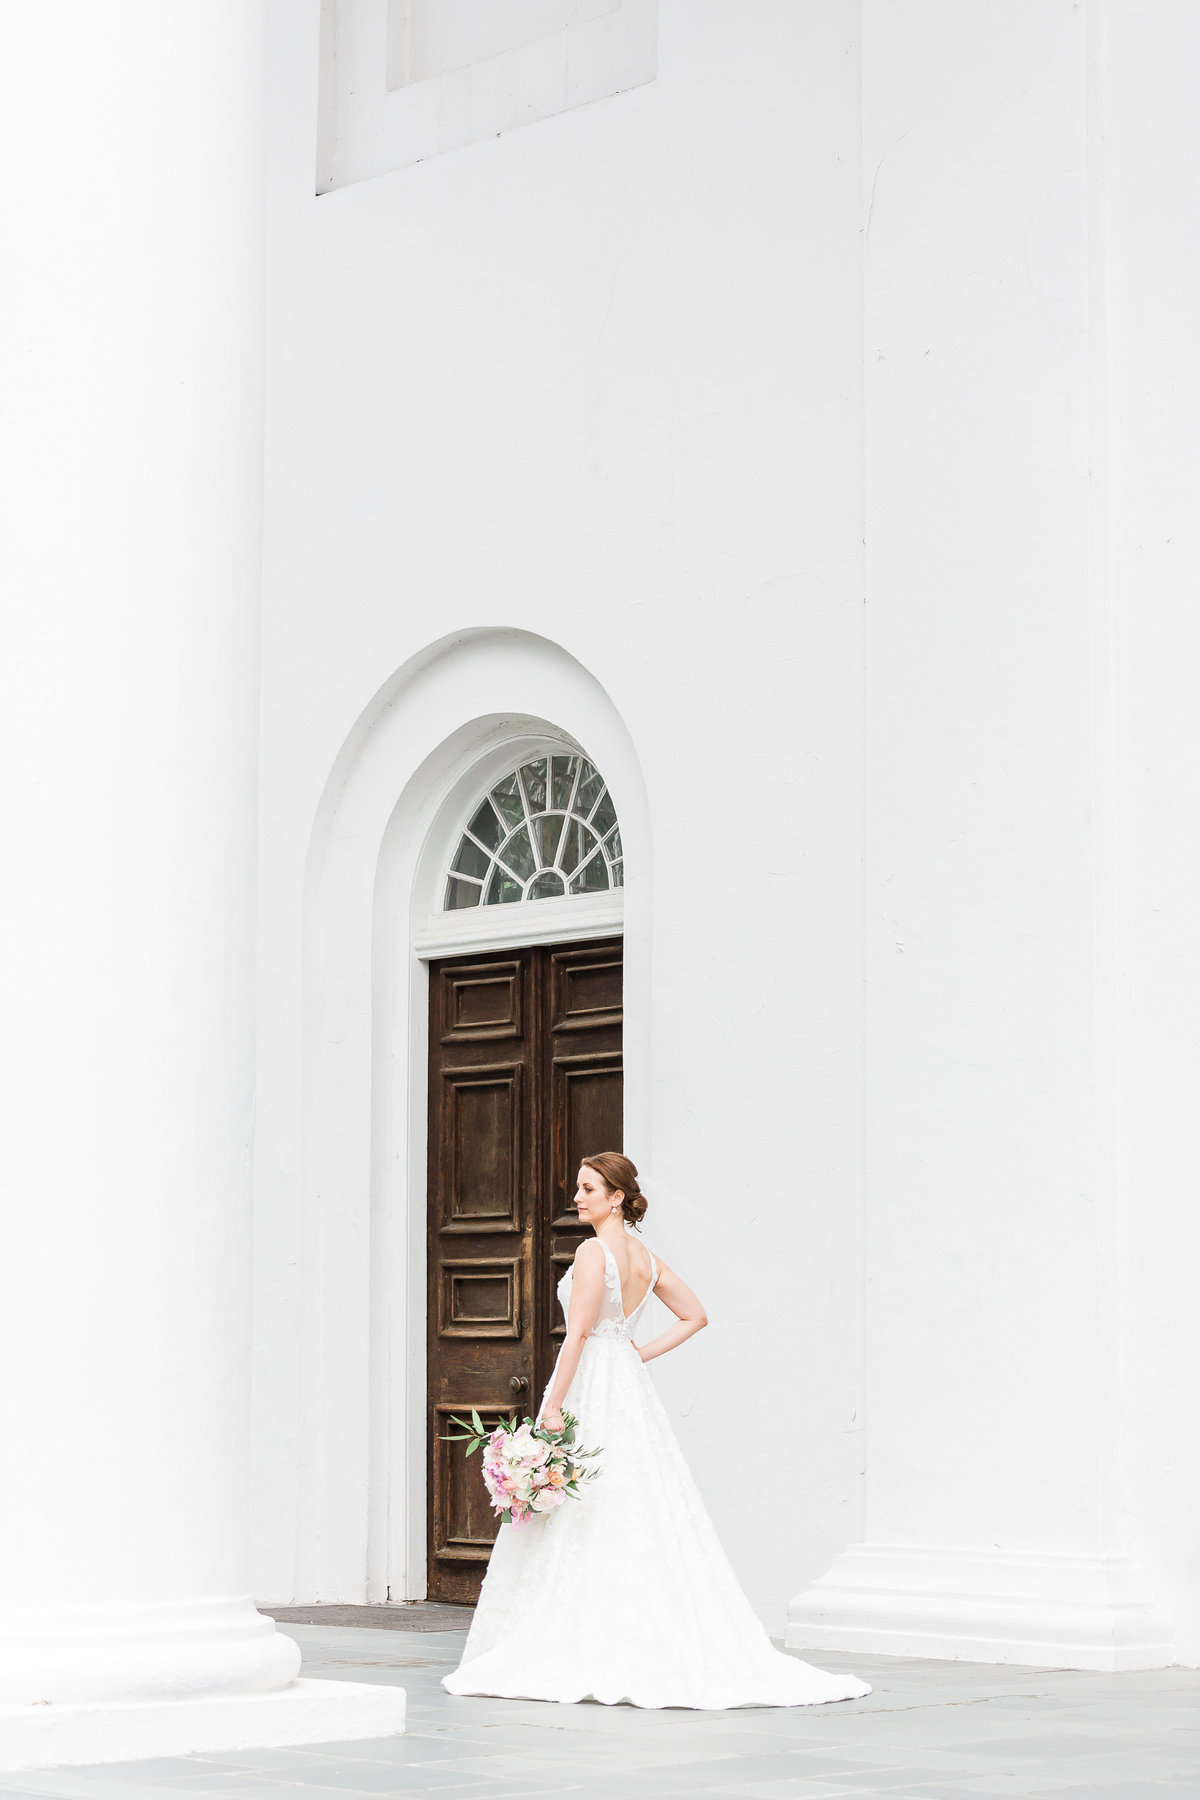 Charleston Weddings- Nancy Lempesis Photography - Wedding Phtography (57)